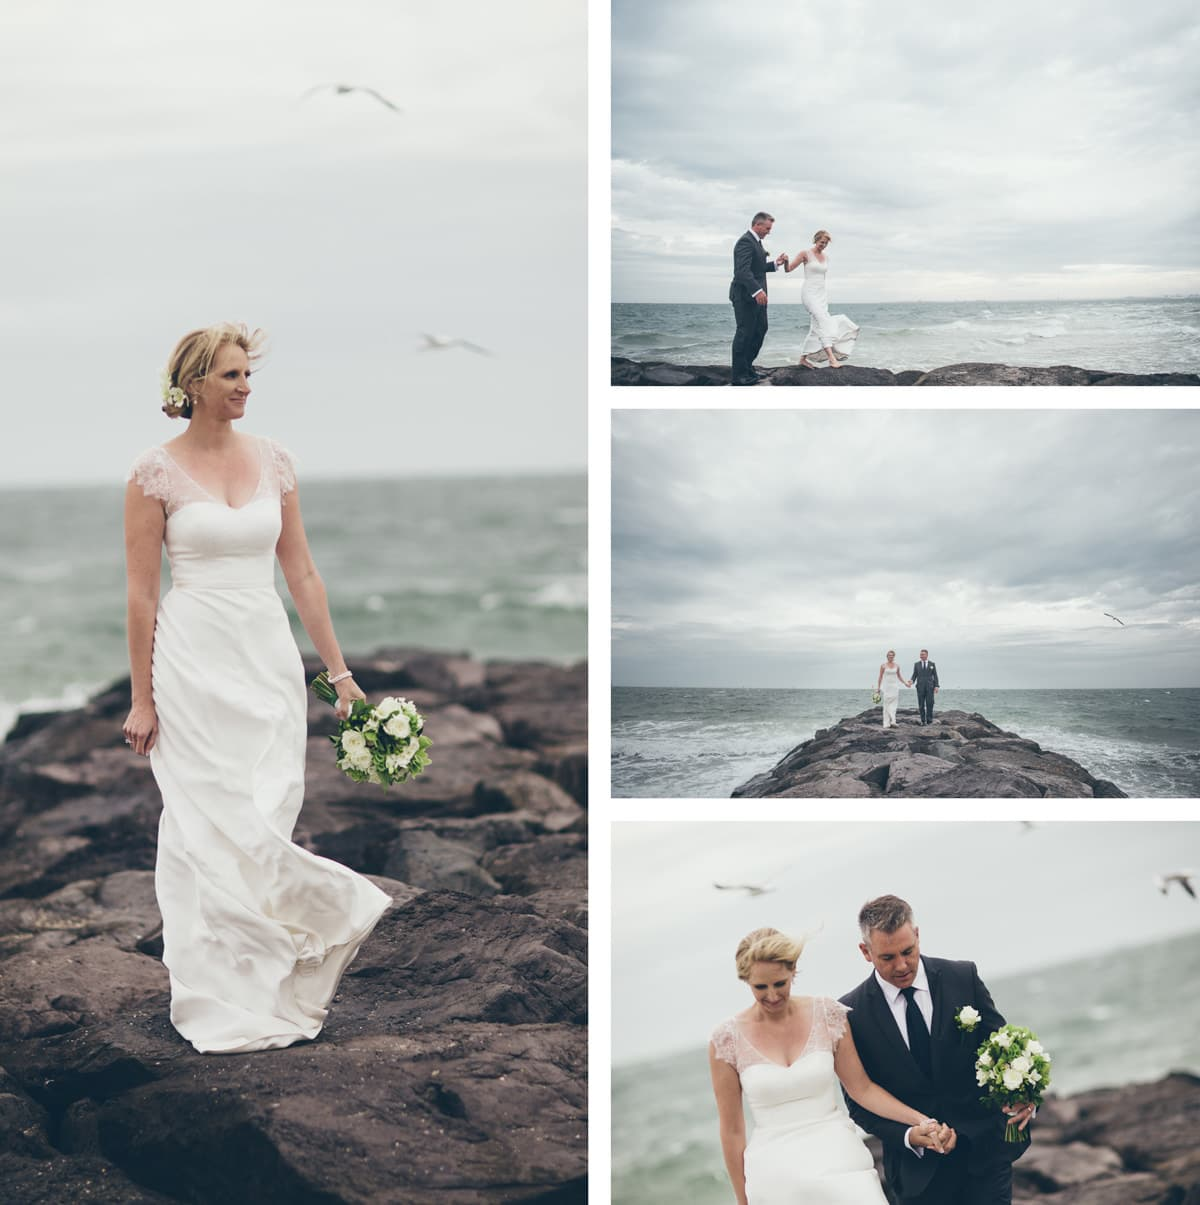 ocean wedding in melbourne - on the rocks